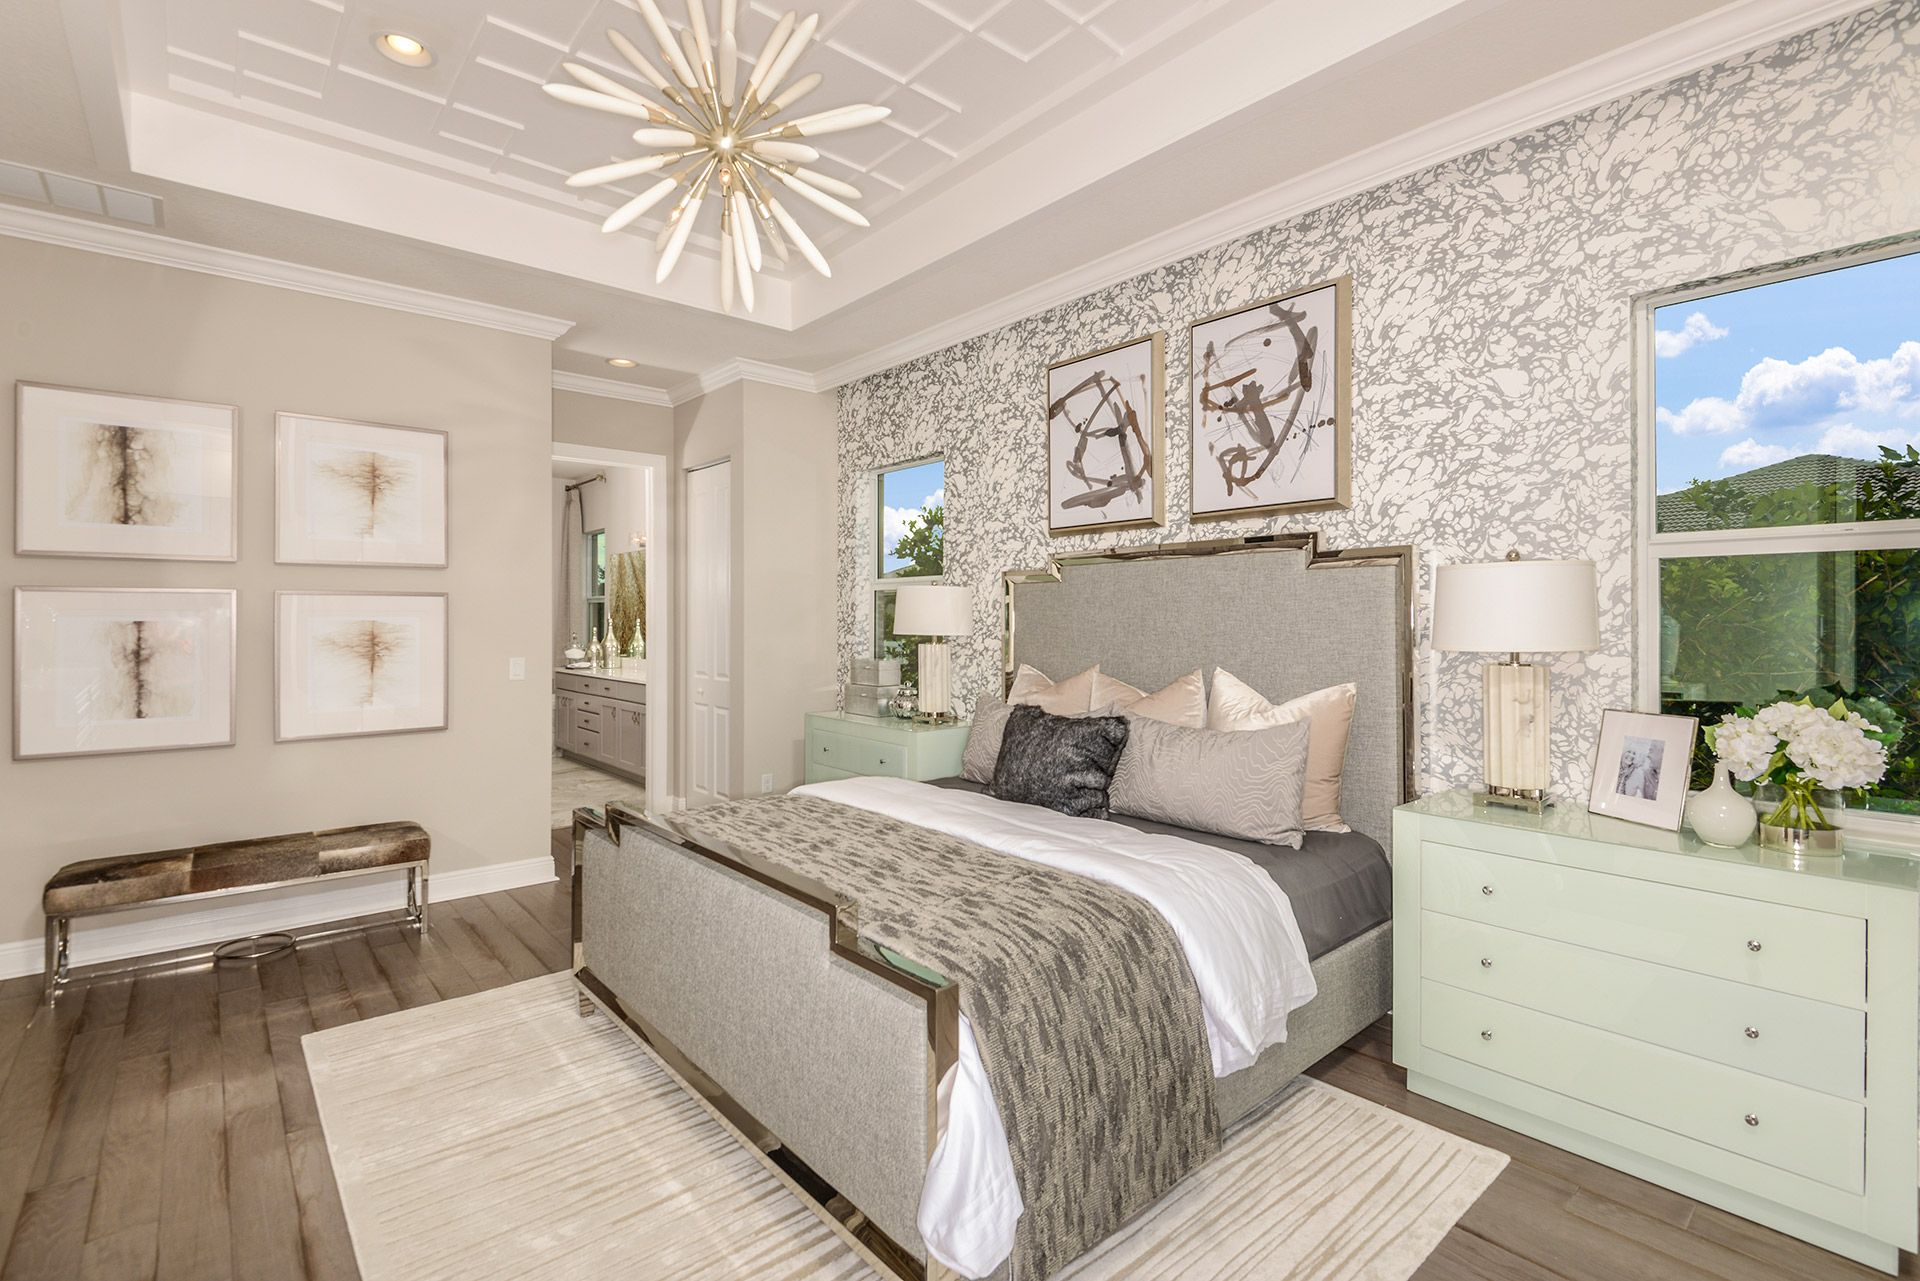 Bedroom featured in the Aruba By GL Homes in Tampa-St. Petersburg, FL